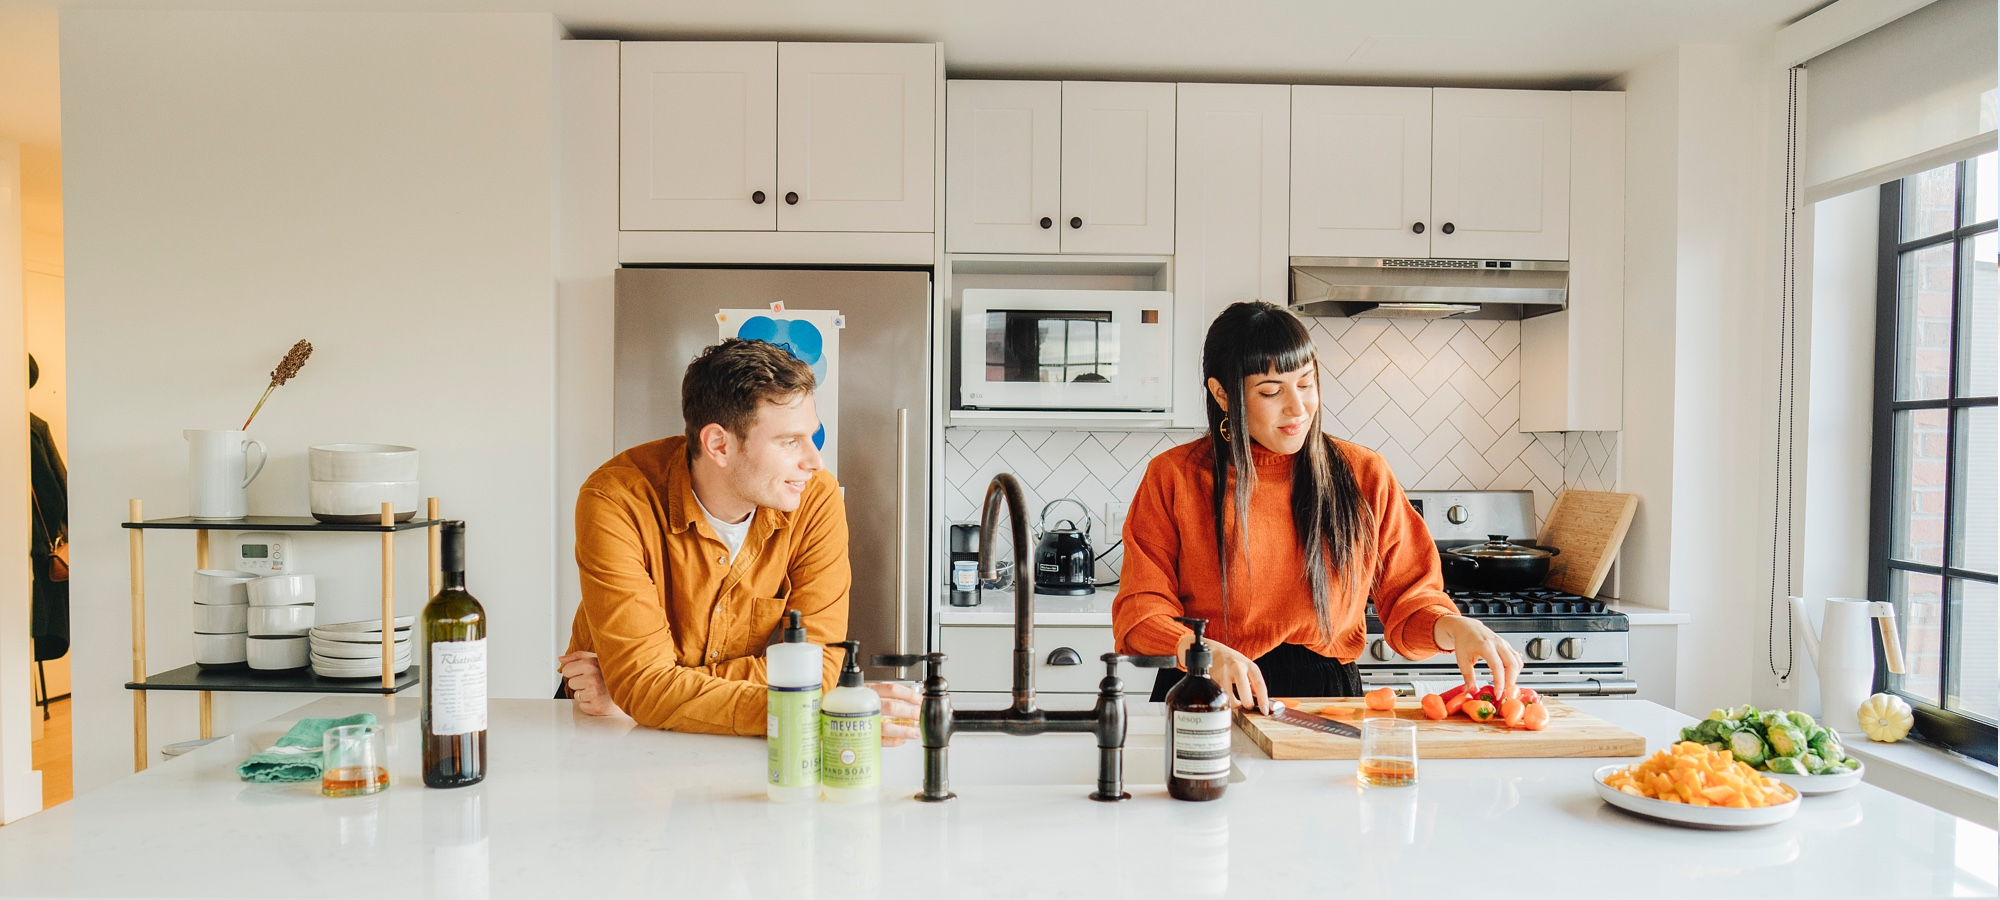 A photo of Brooklyn based couple Liron and Gal in their clean, well finished kitchen. Read more about them on the Floyd Blog, LivedIn.